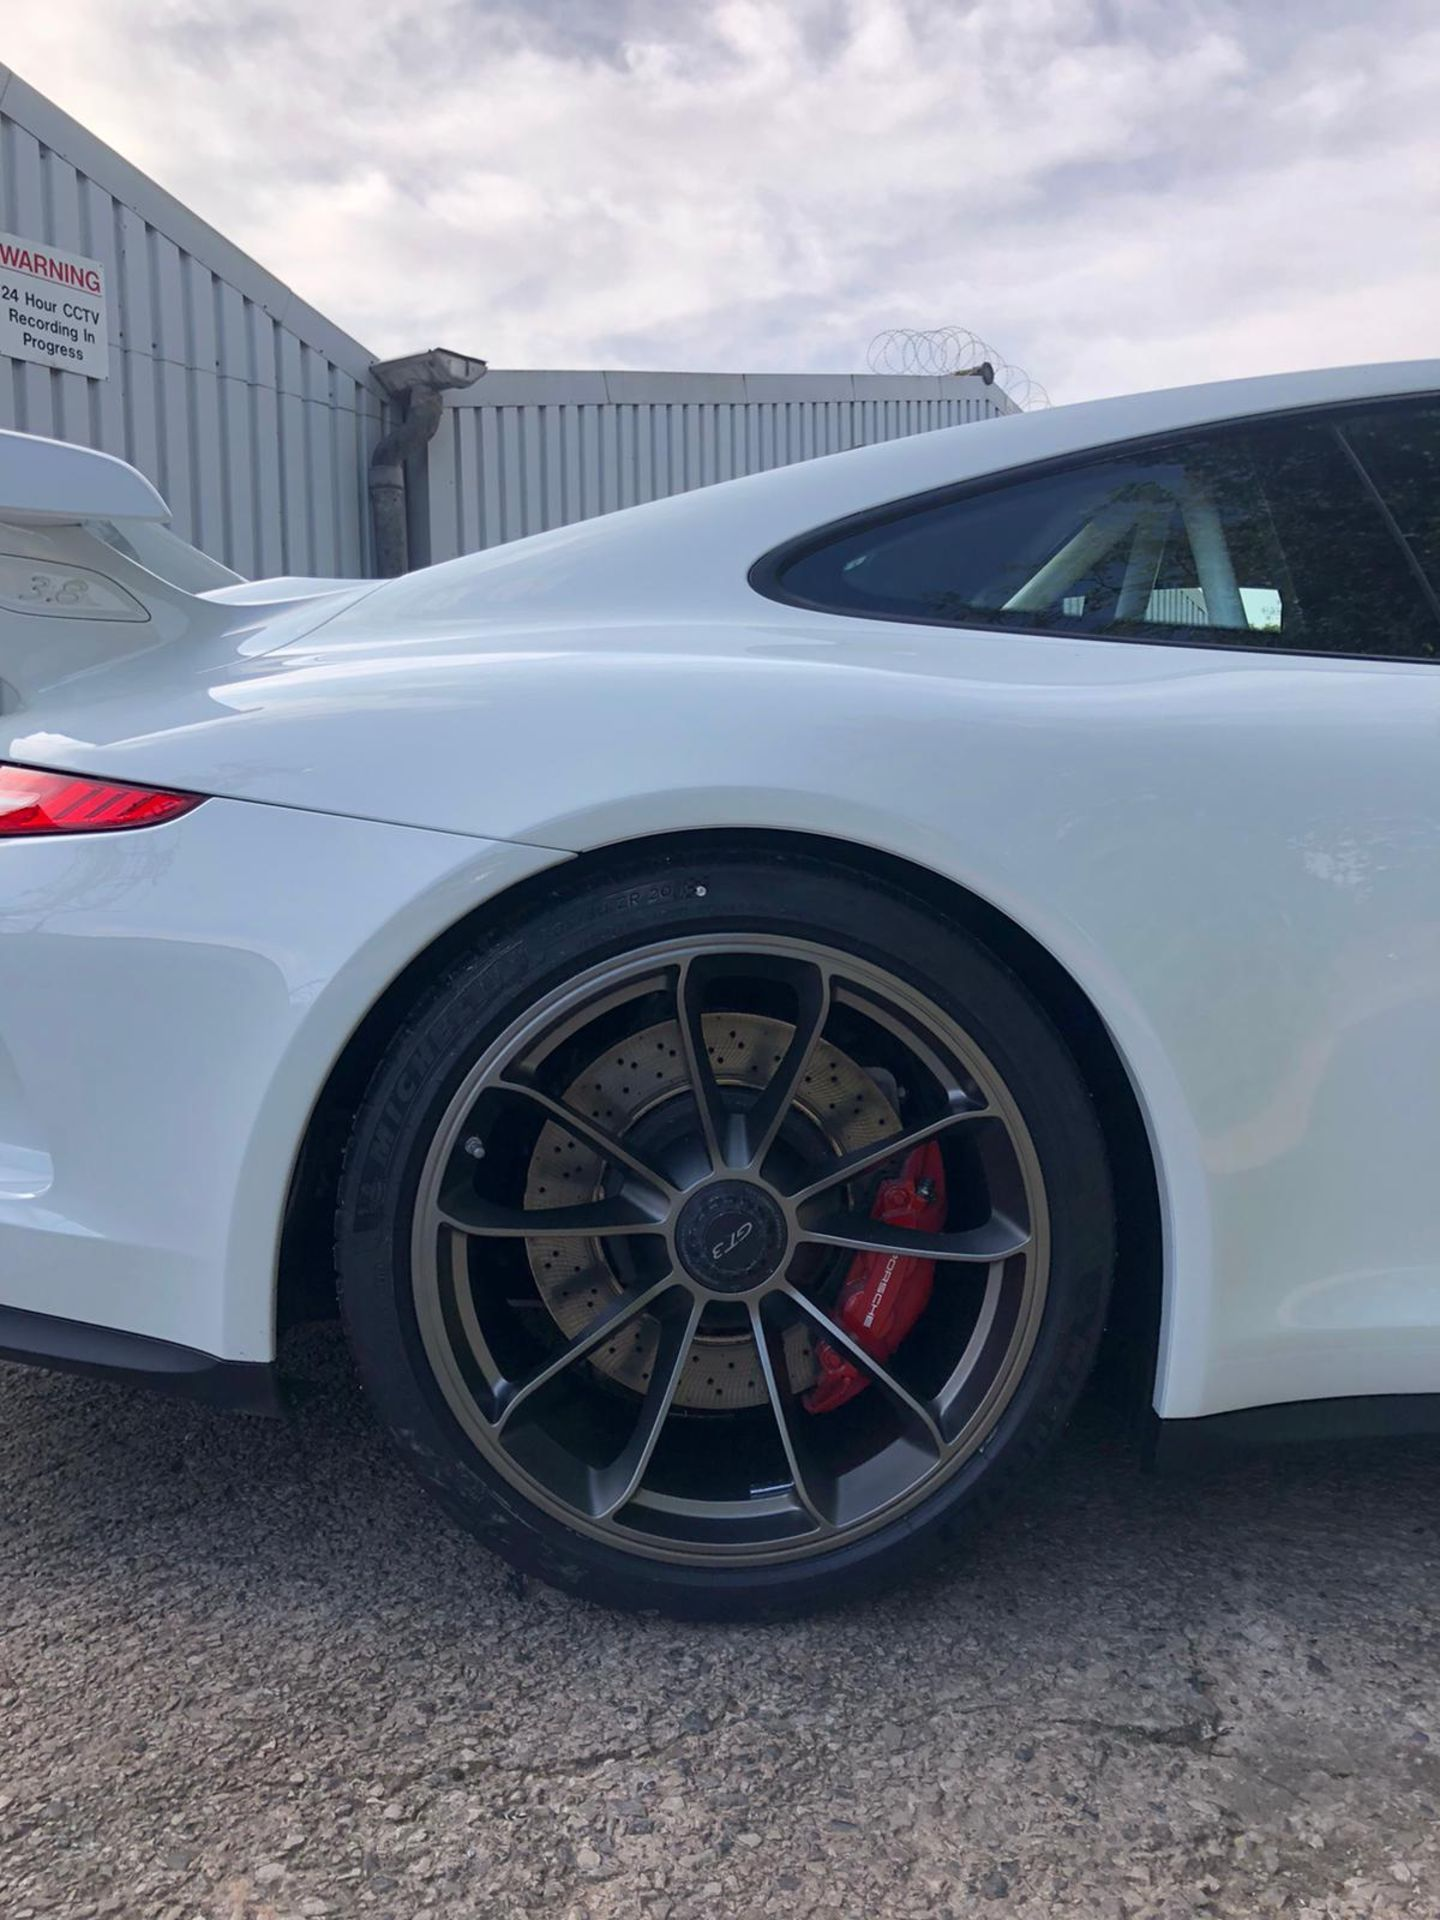 2014 PORSCHE GT3, CLUB SPORT ROLL CAGE, RACE SEATS CARBON KIT, 29,000 MILES, FULL PORSCHE HISTORY - Image 9 of 29